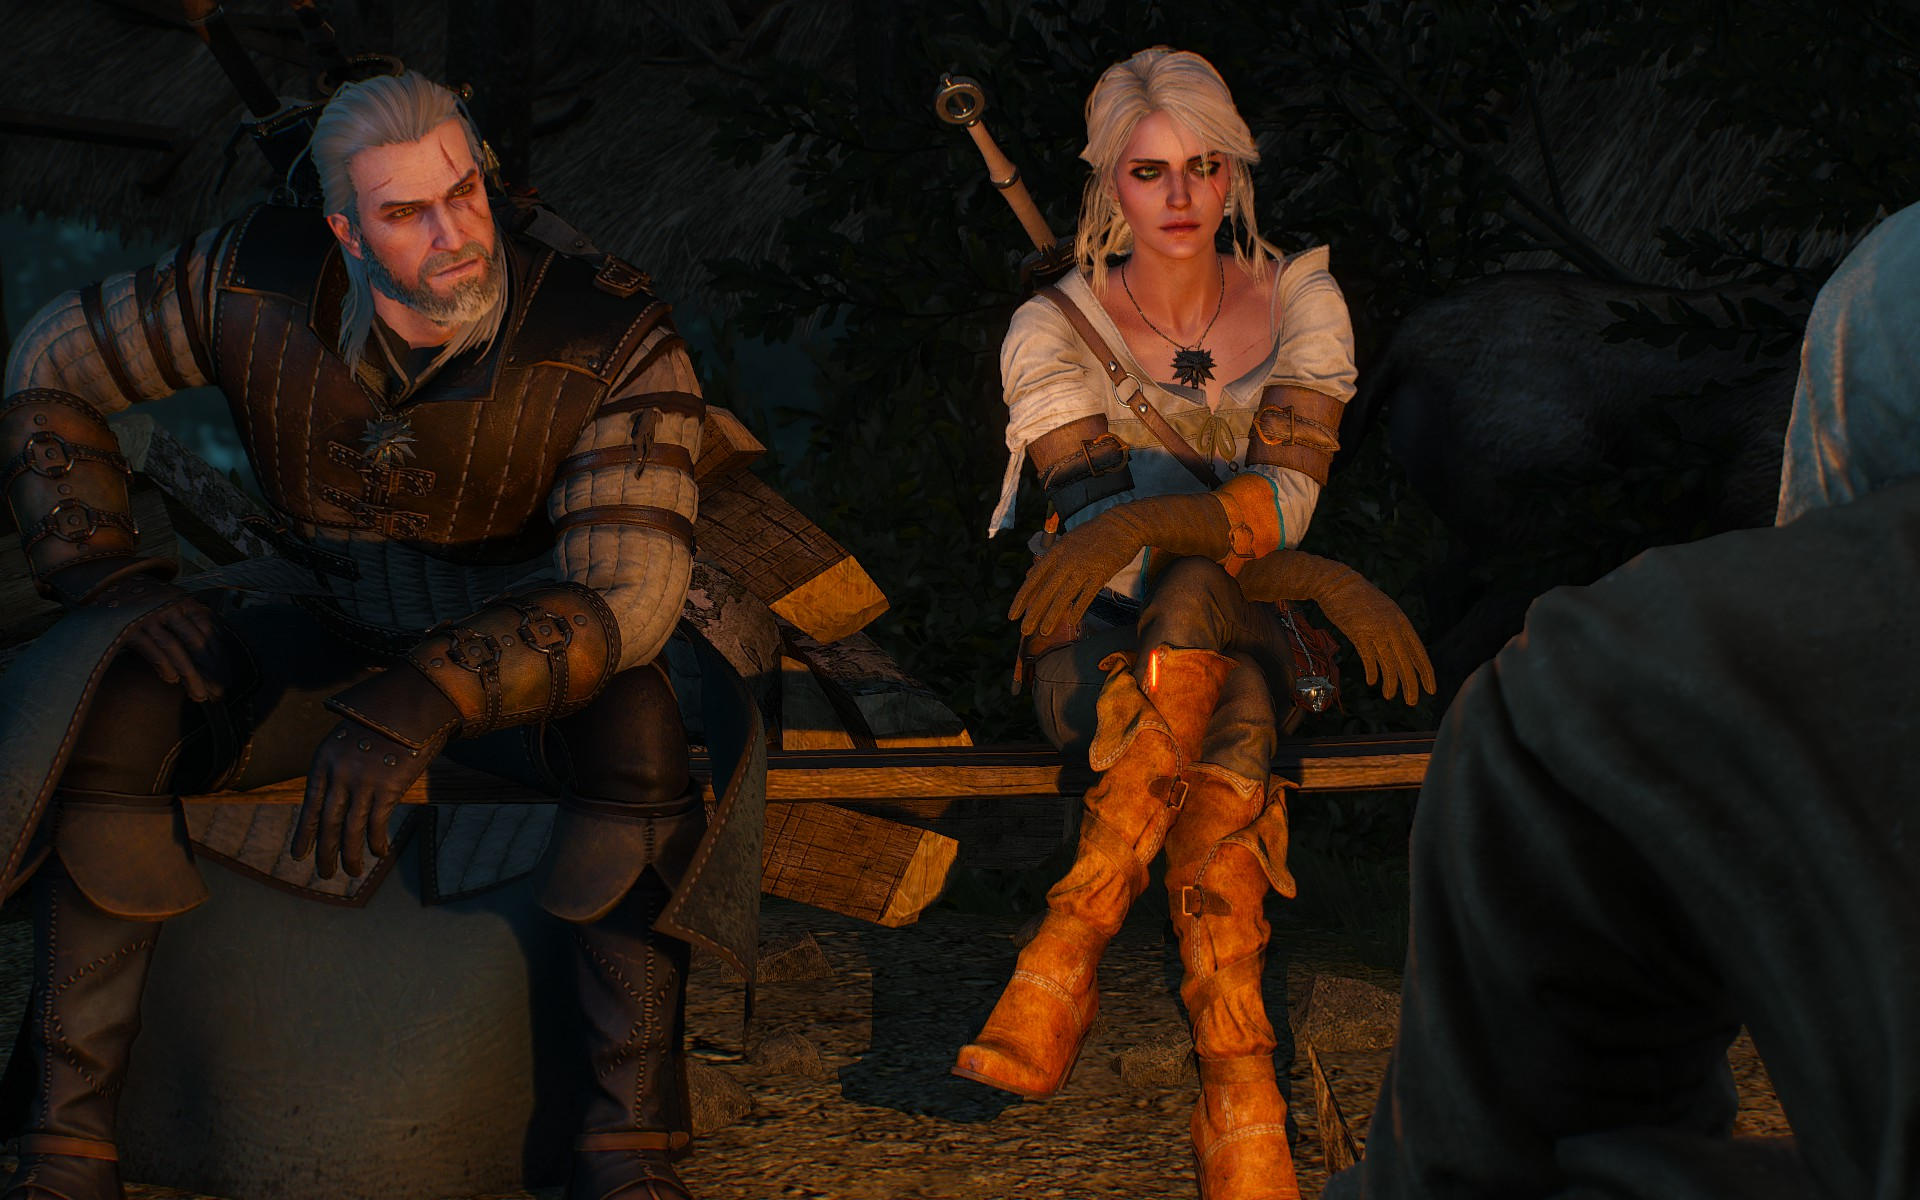 I think those upper arm things are supposed to be bracers, but otherwise Ciri has no protection in a fight.